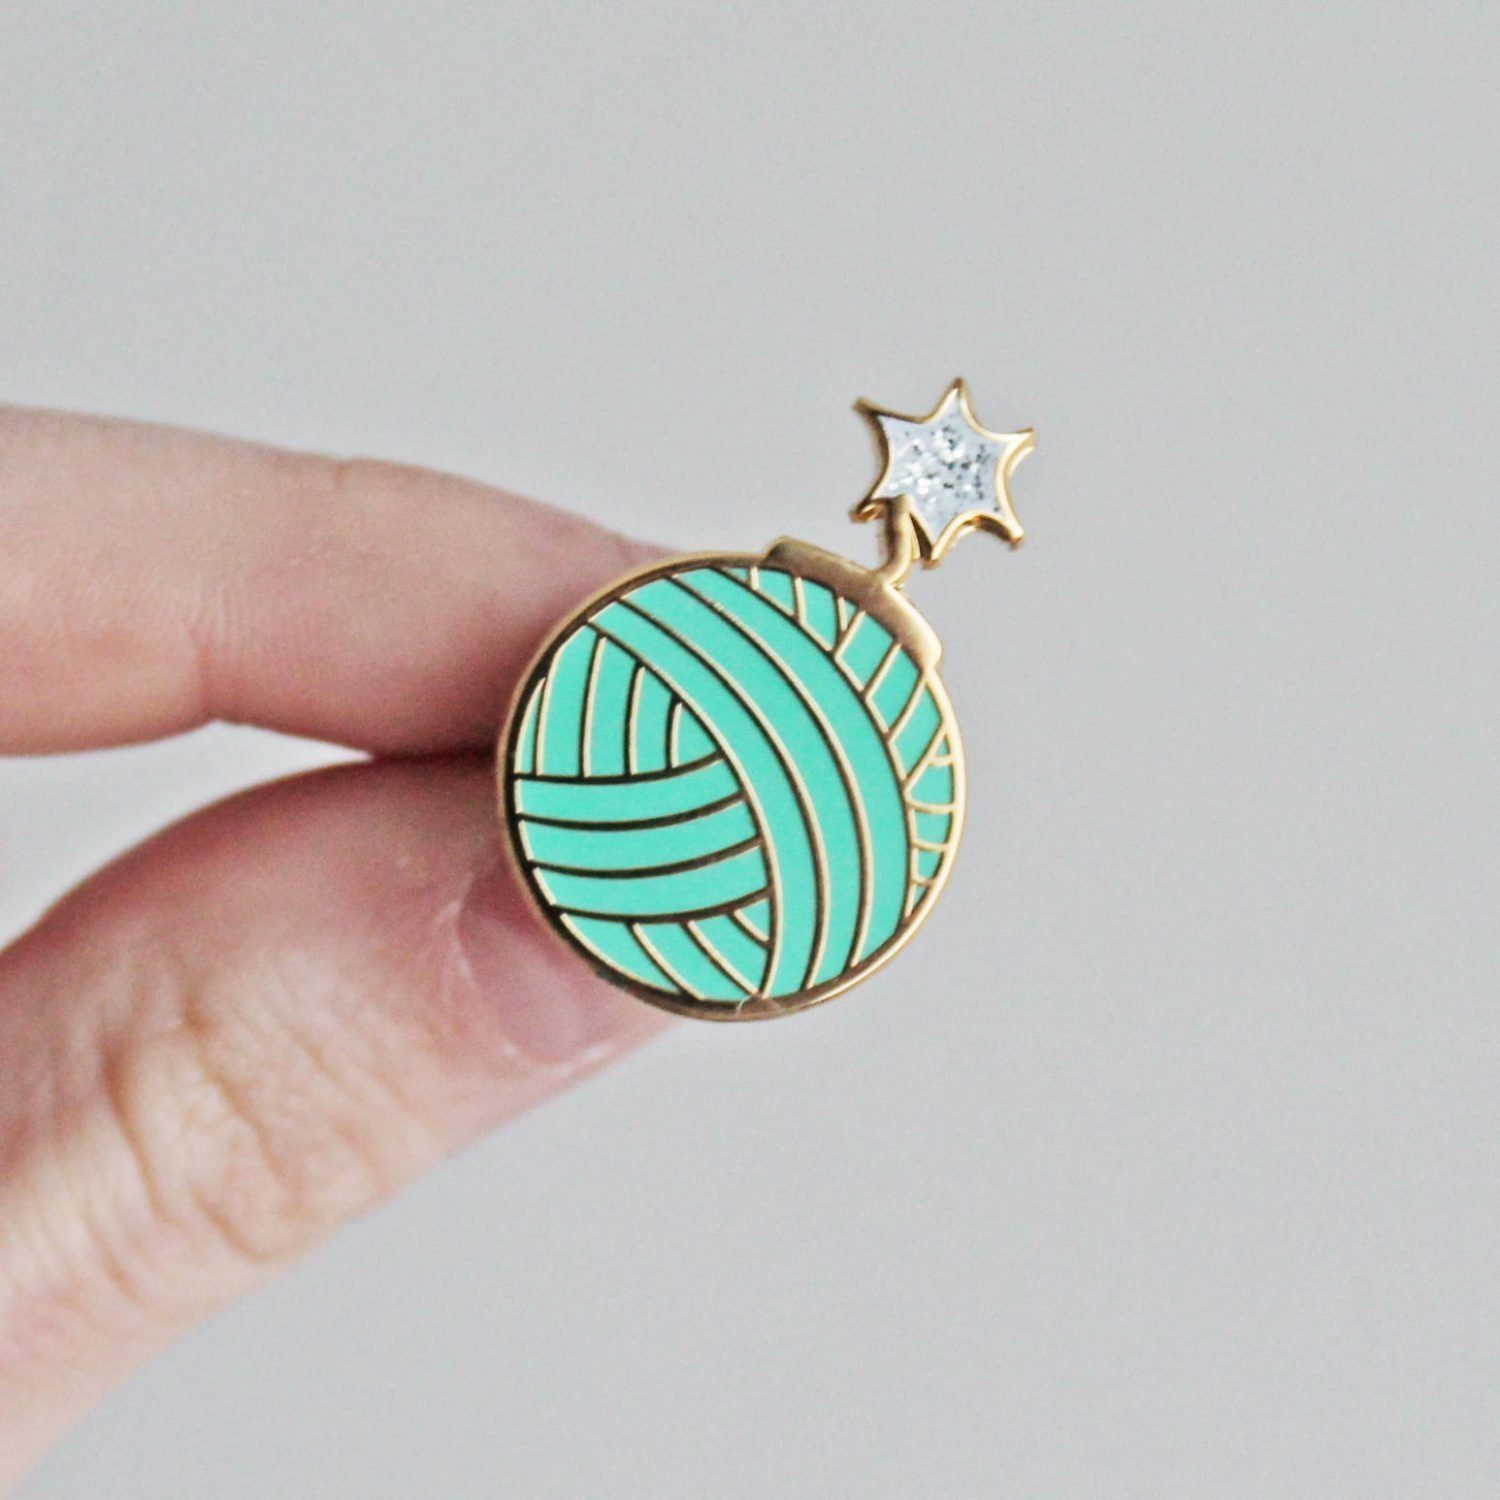 Yarnbomb Pin by Twill and Print